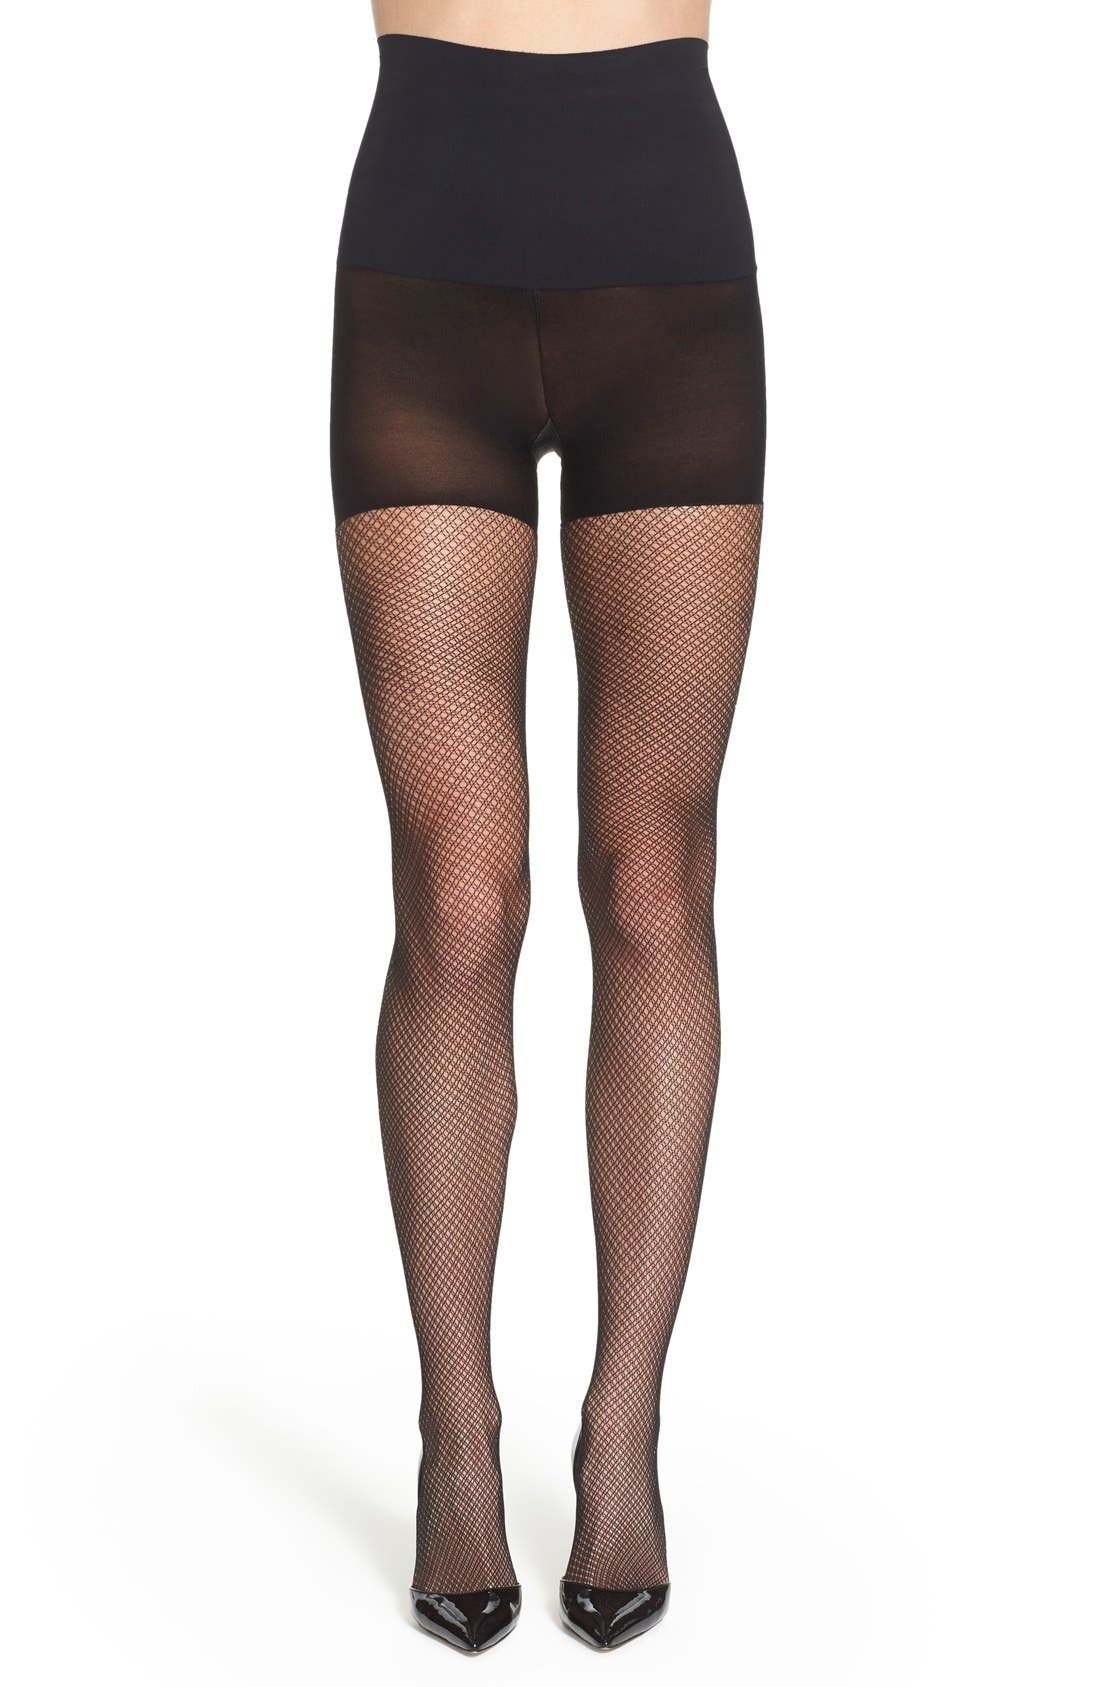 'Everyday Crochet' Control Top Tights,                             Main thumbnail 1, color,                             001